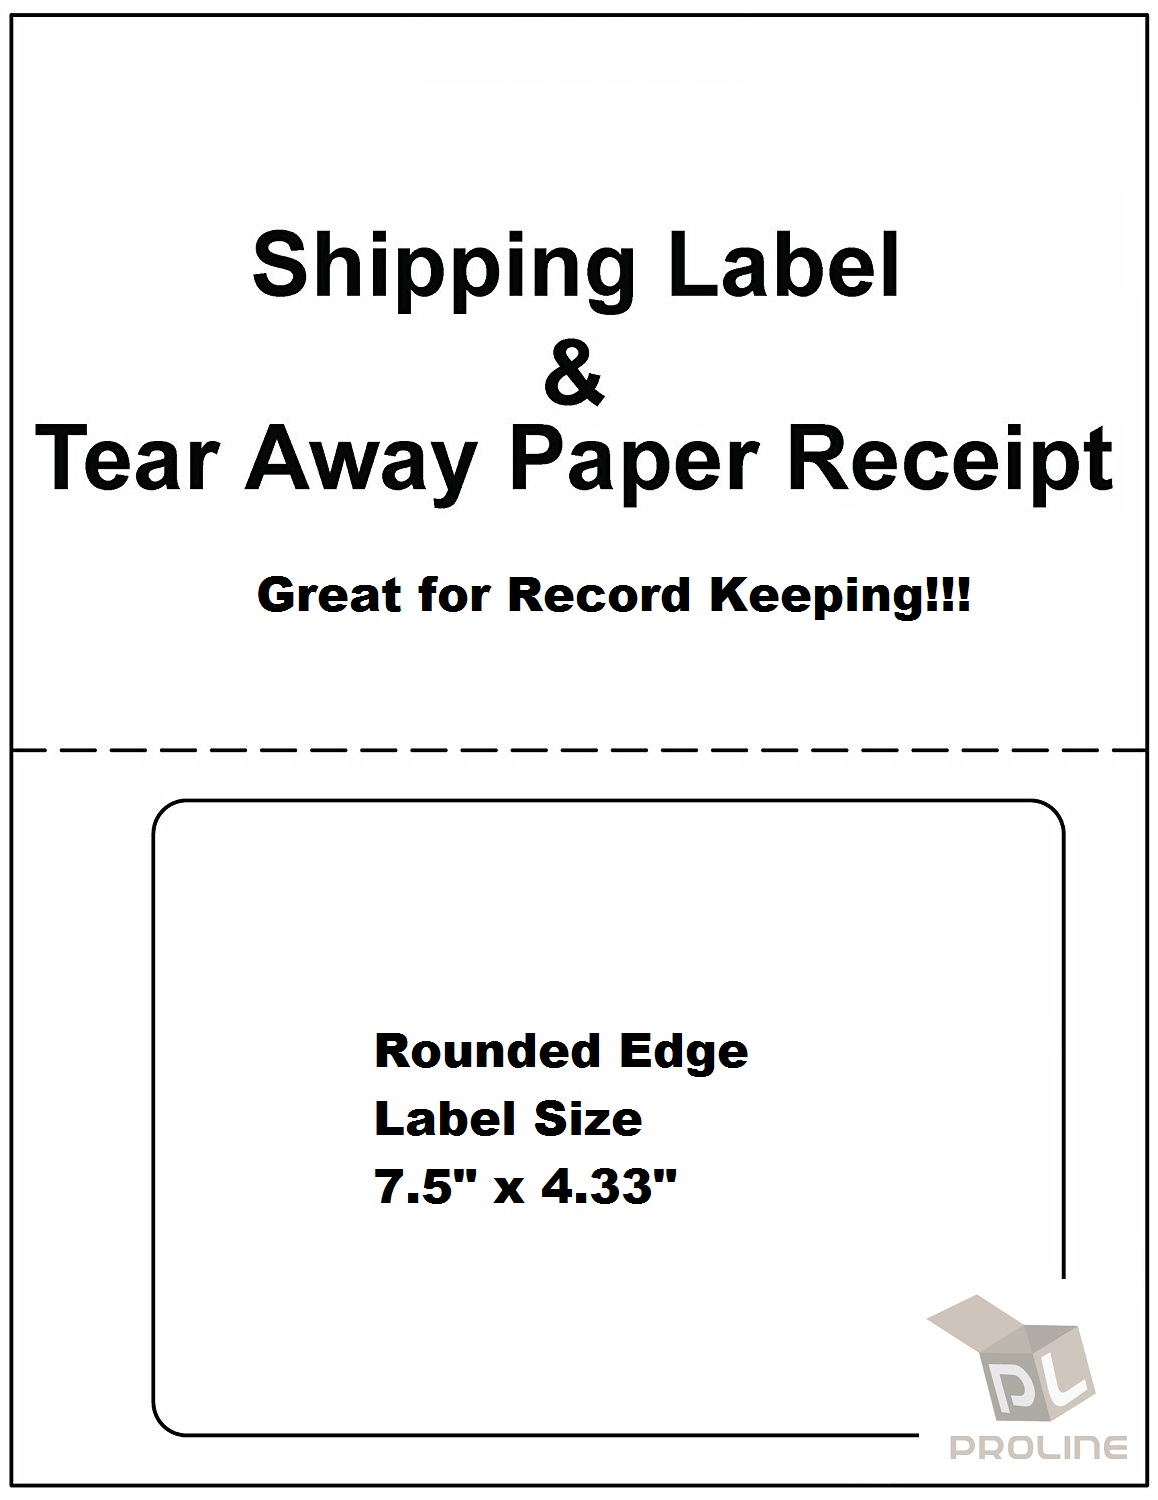 1000 Labels PayPal / Ebay Shipping w/ Tear off Paper Receipt